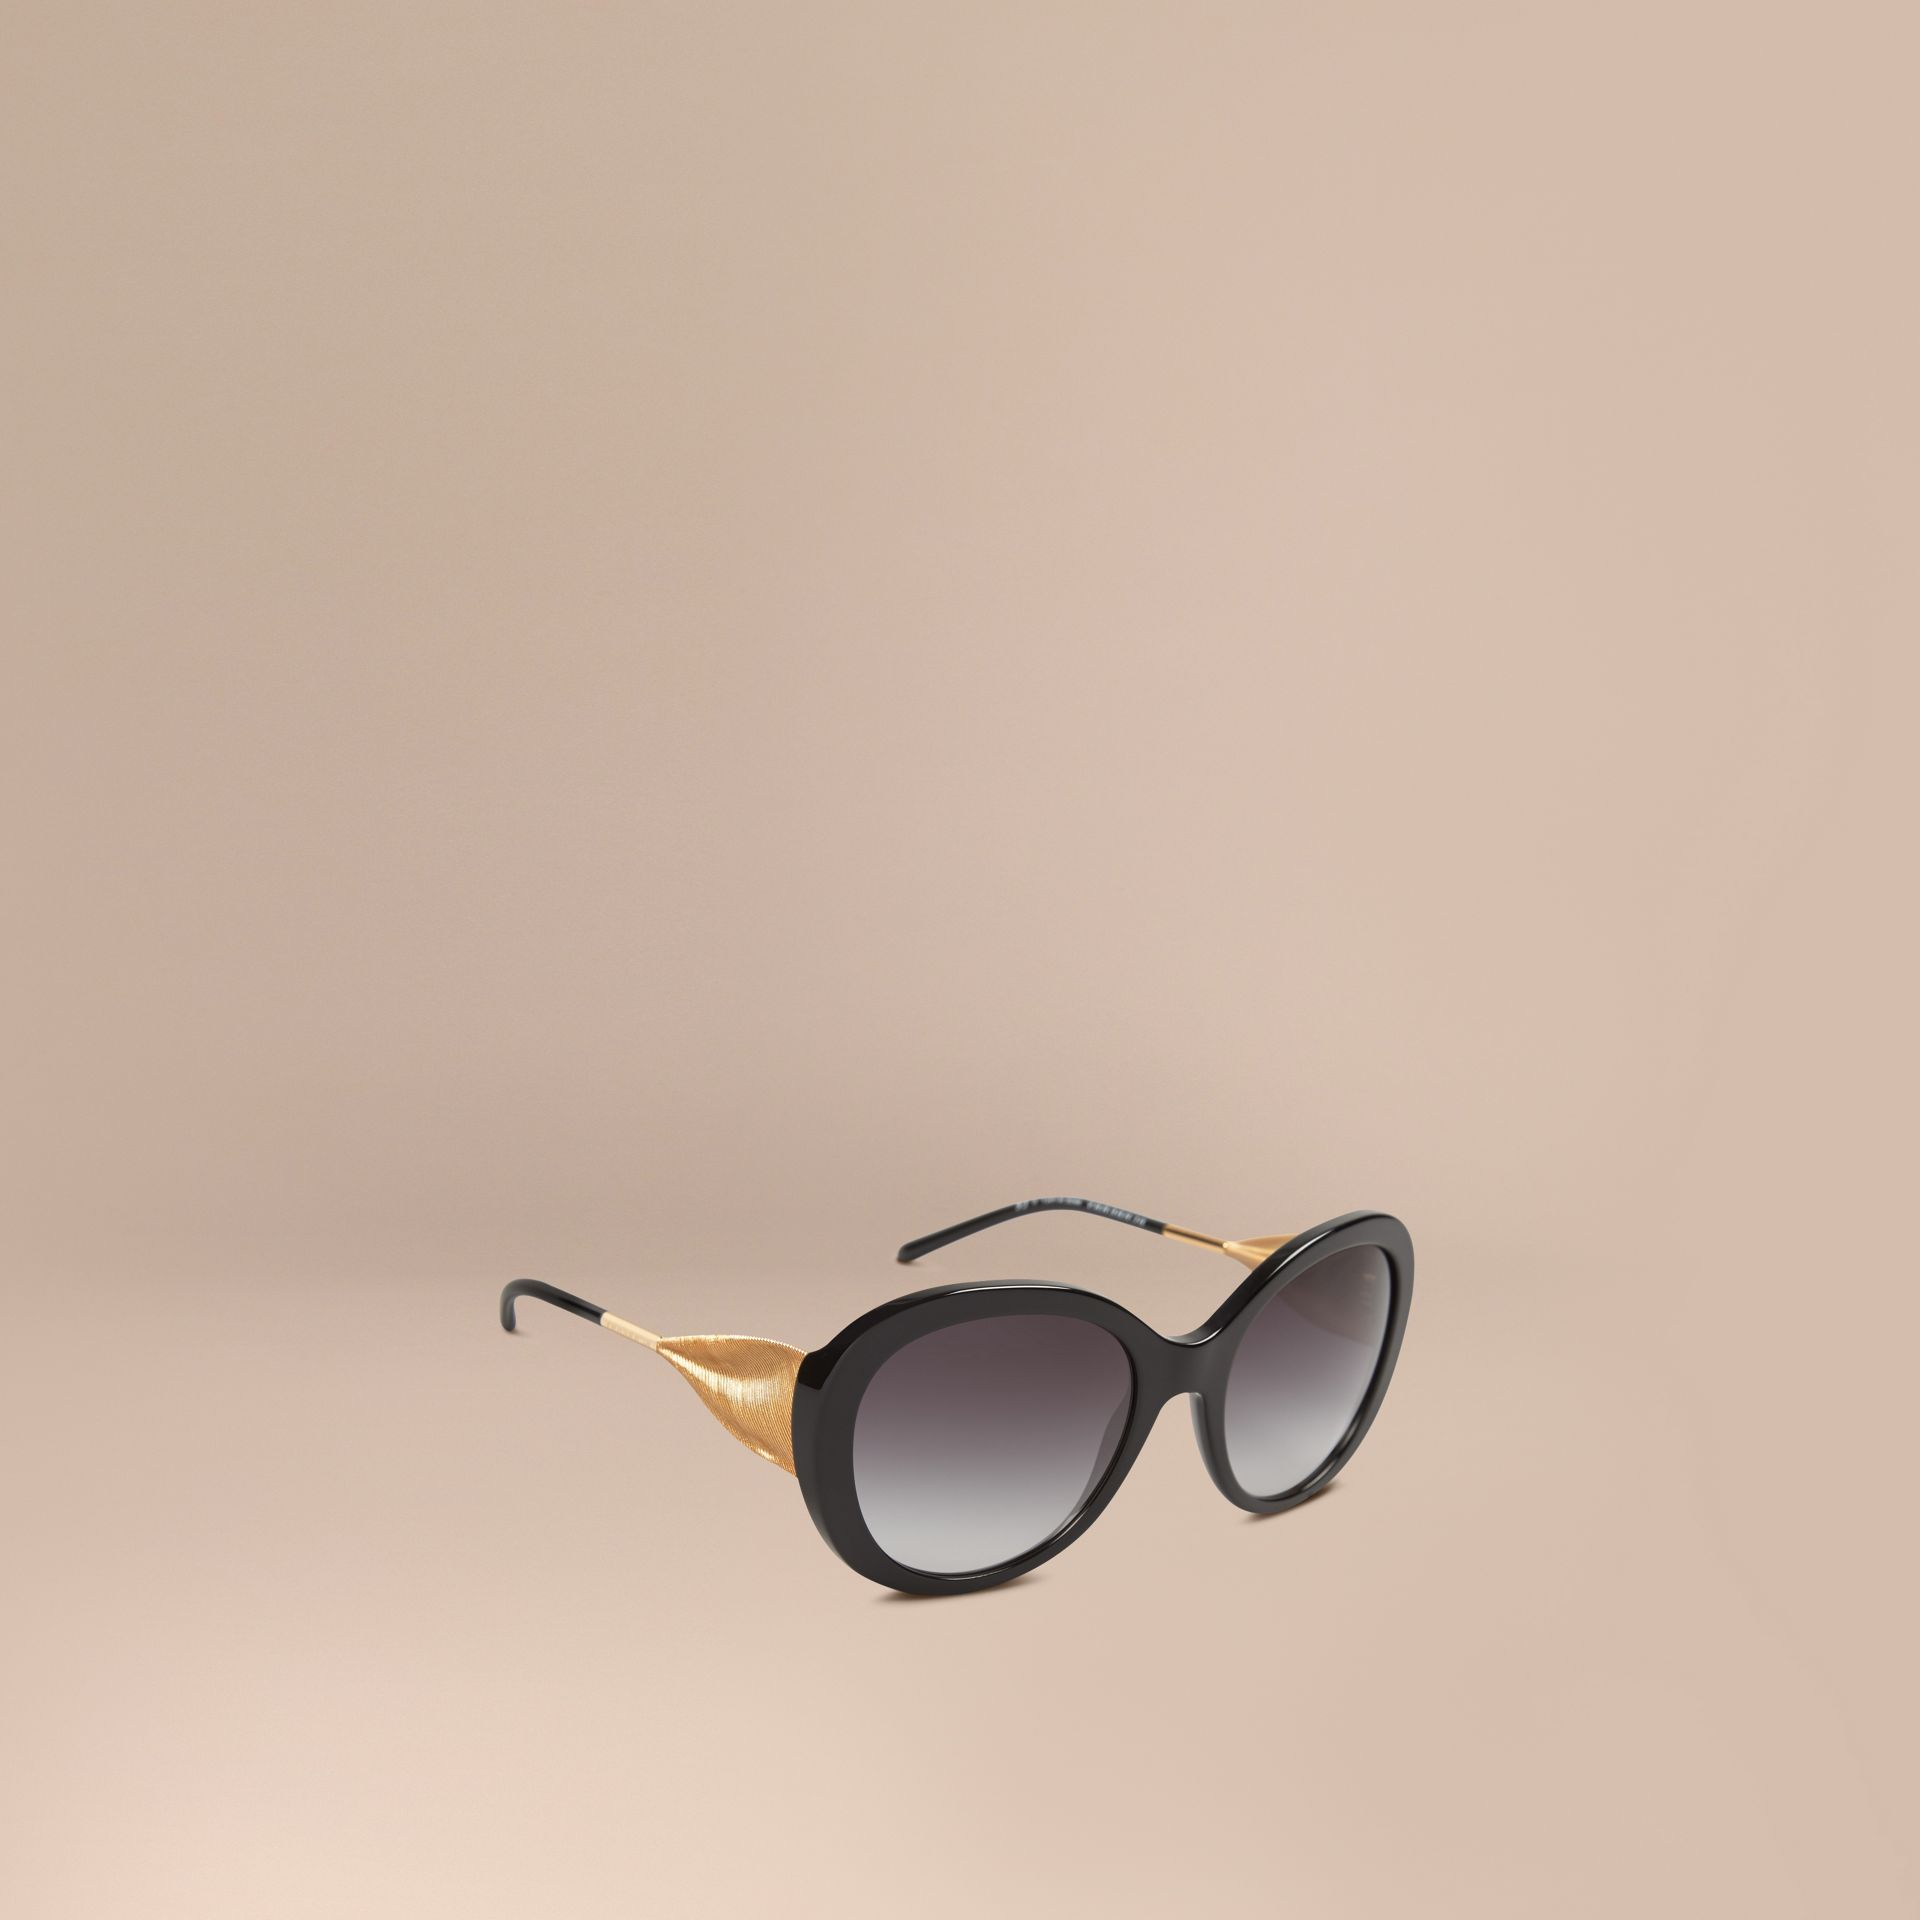 Gabardine Collection Oversize Round Frame Sunglasses in Black - Women | Burberry Hong Kong - gallery image 1